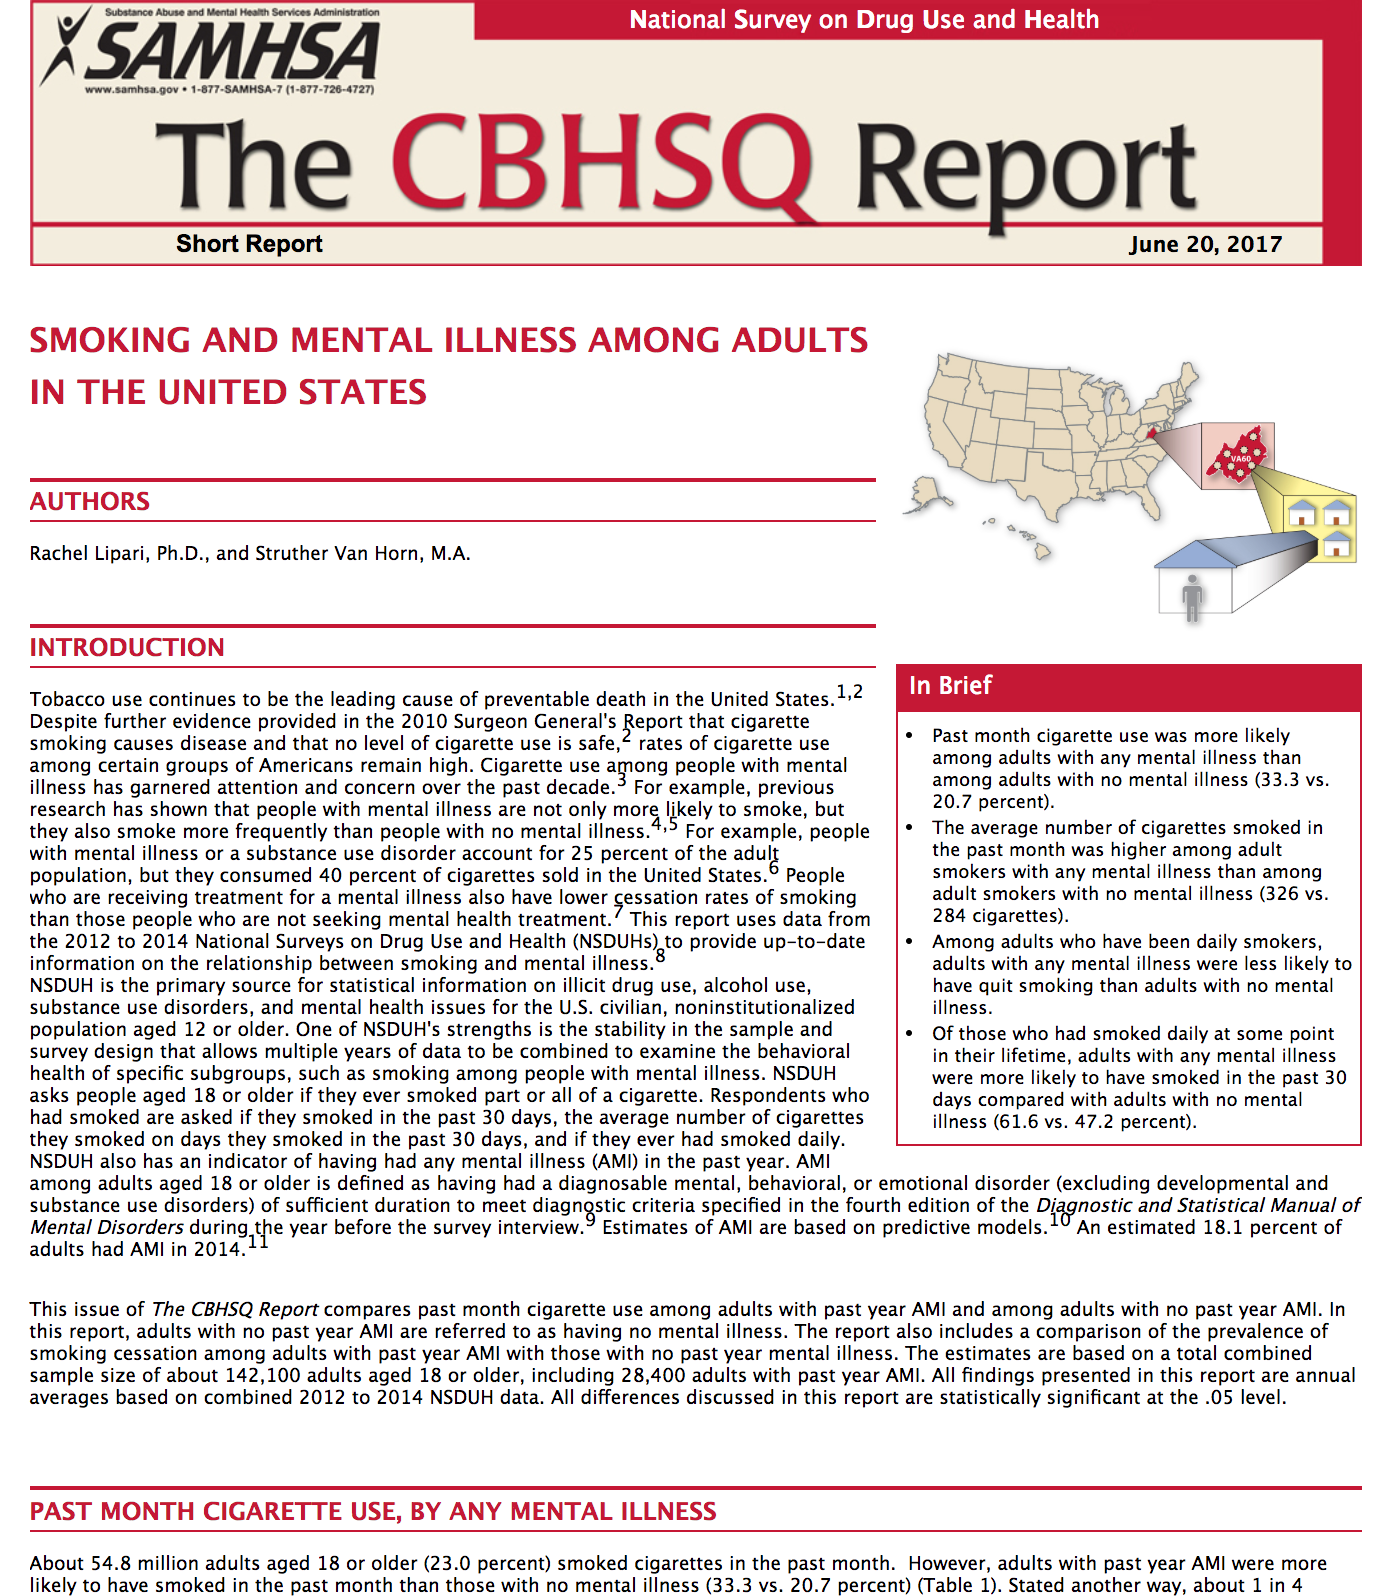 Smoking and Mental Illness Among Adults in the United States